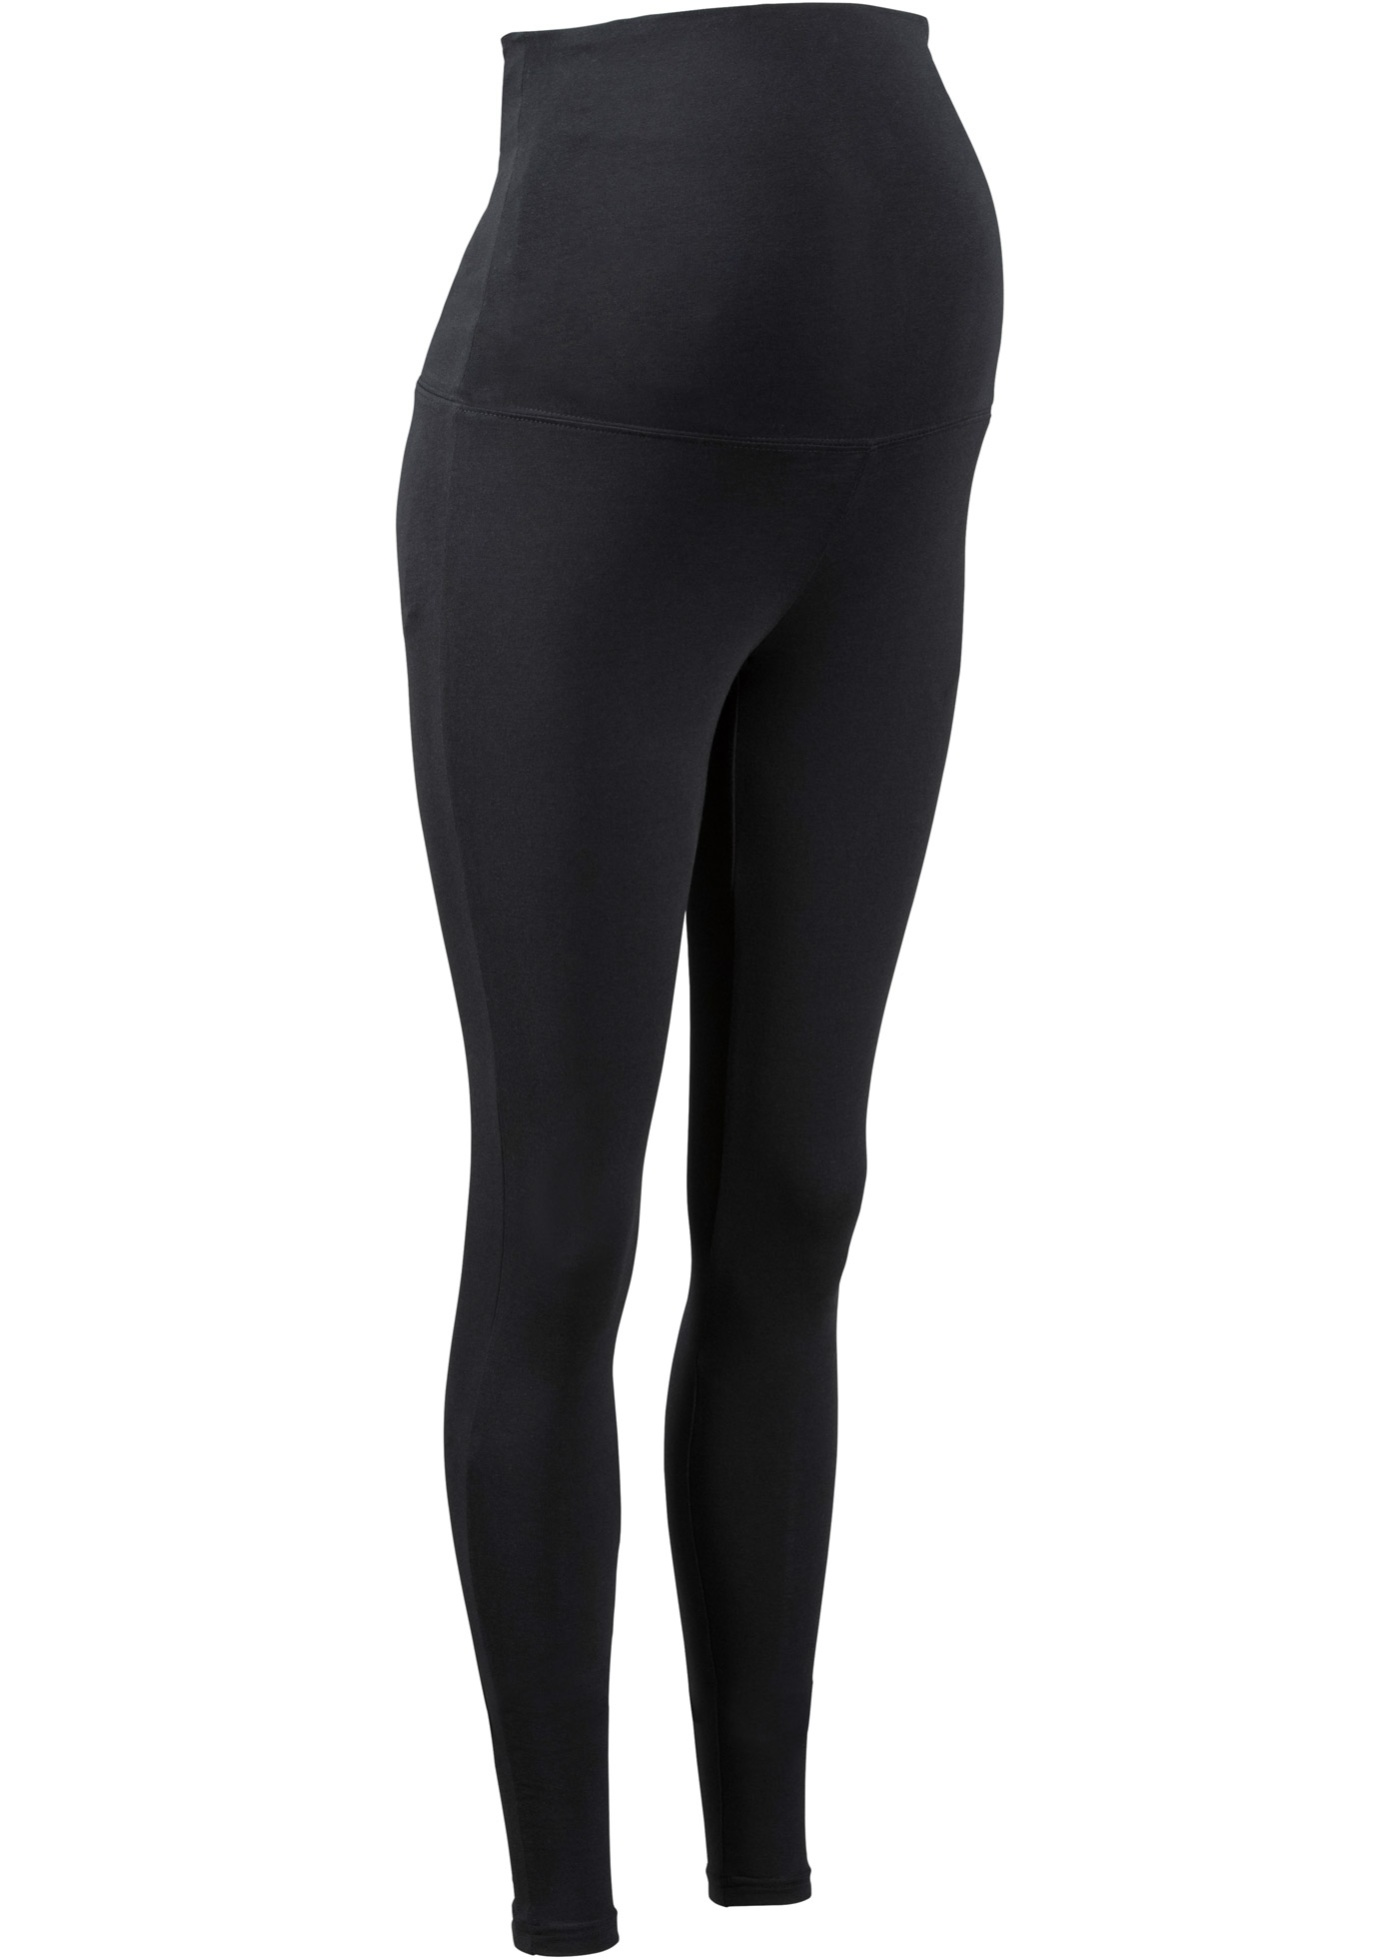 Leggings prémaman (Nero) - bpc bonprix collection - Nice Size